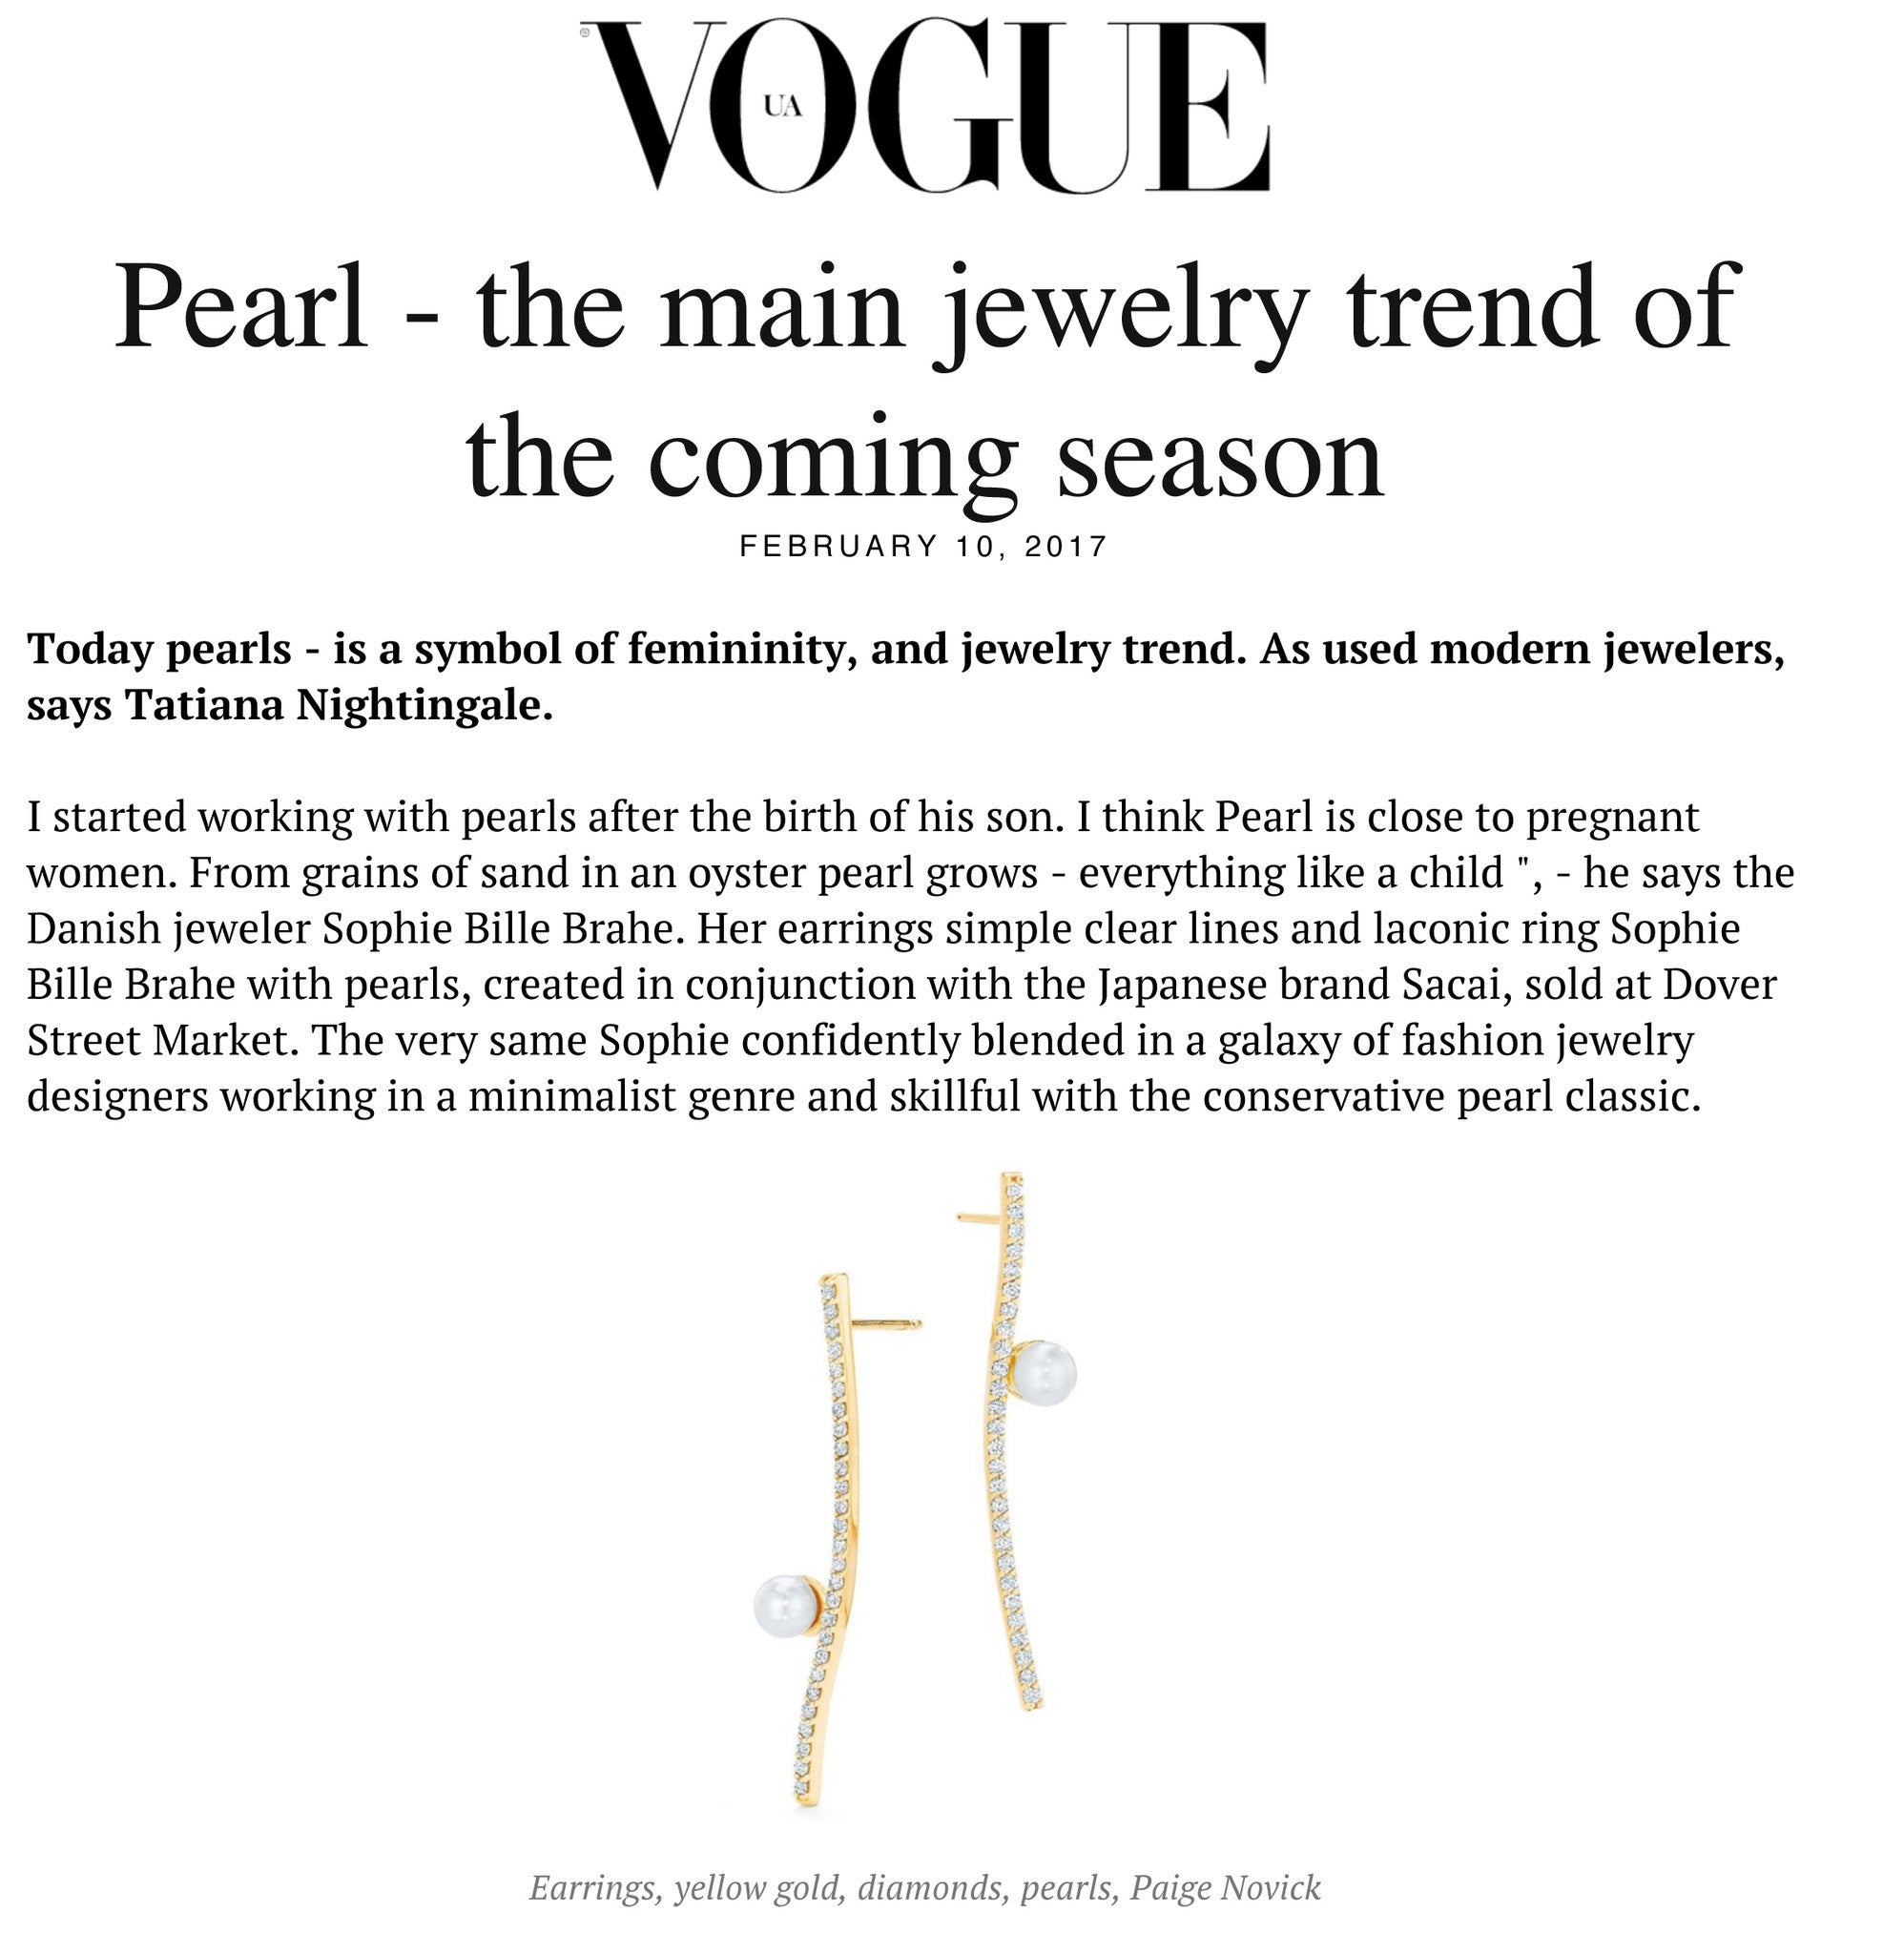 Merci, Vogue.au!